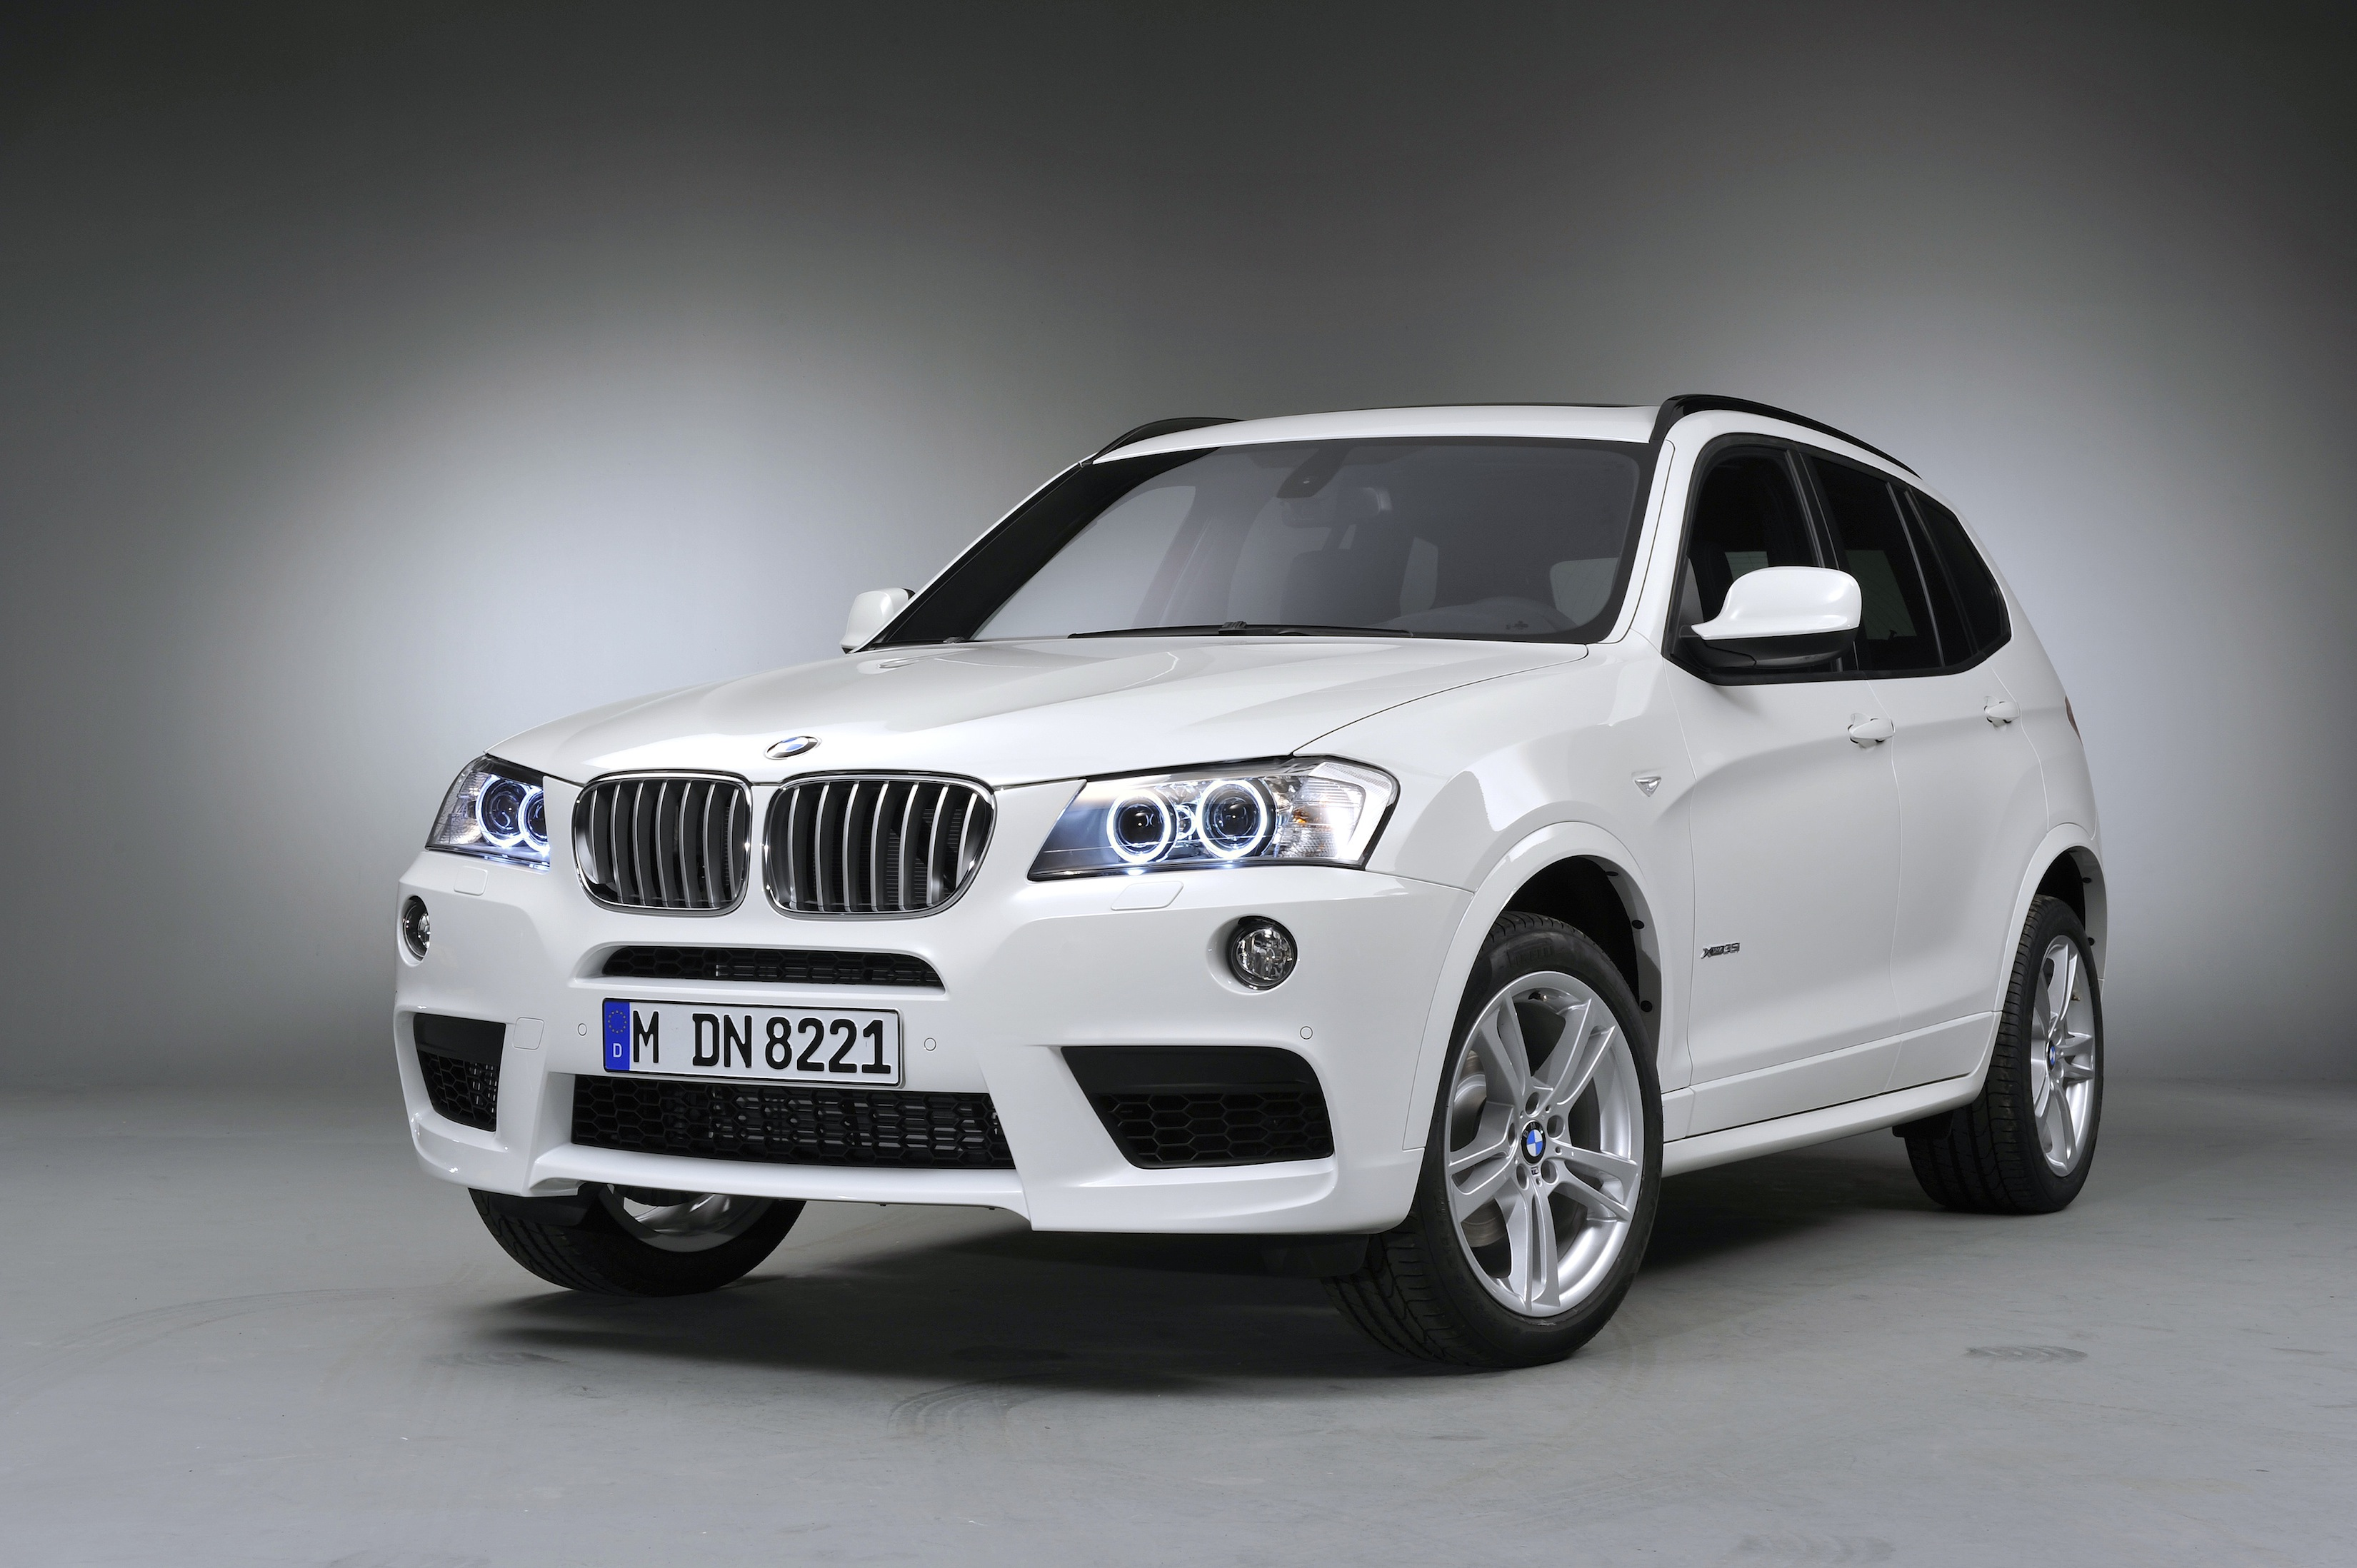 essai du bmw x3 xdrive35i 2014 essais routiers actualit s. Black Bedroom Furniture Sets. Home Design Ideas